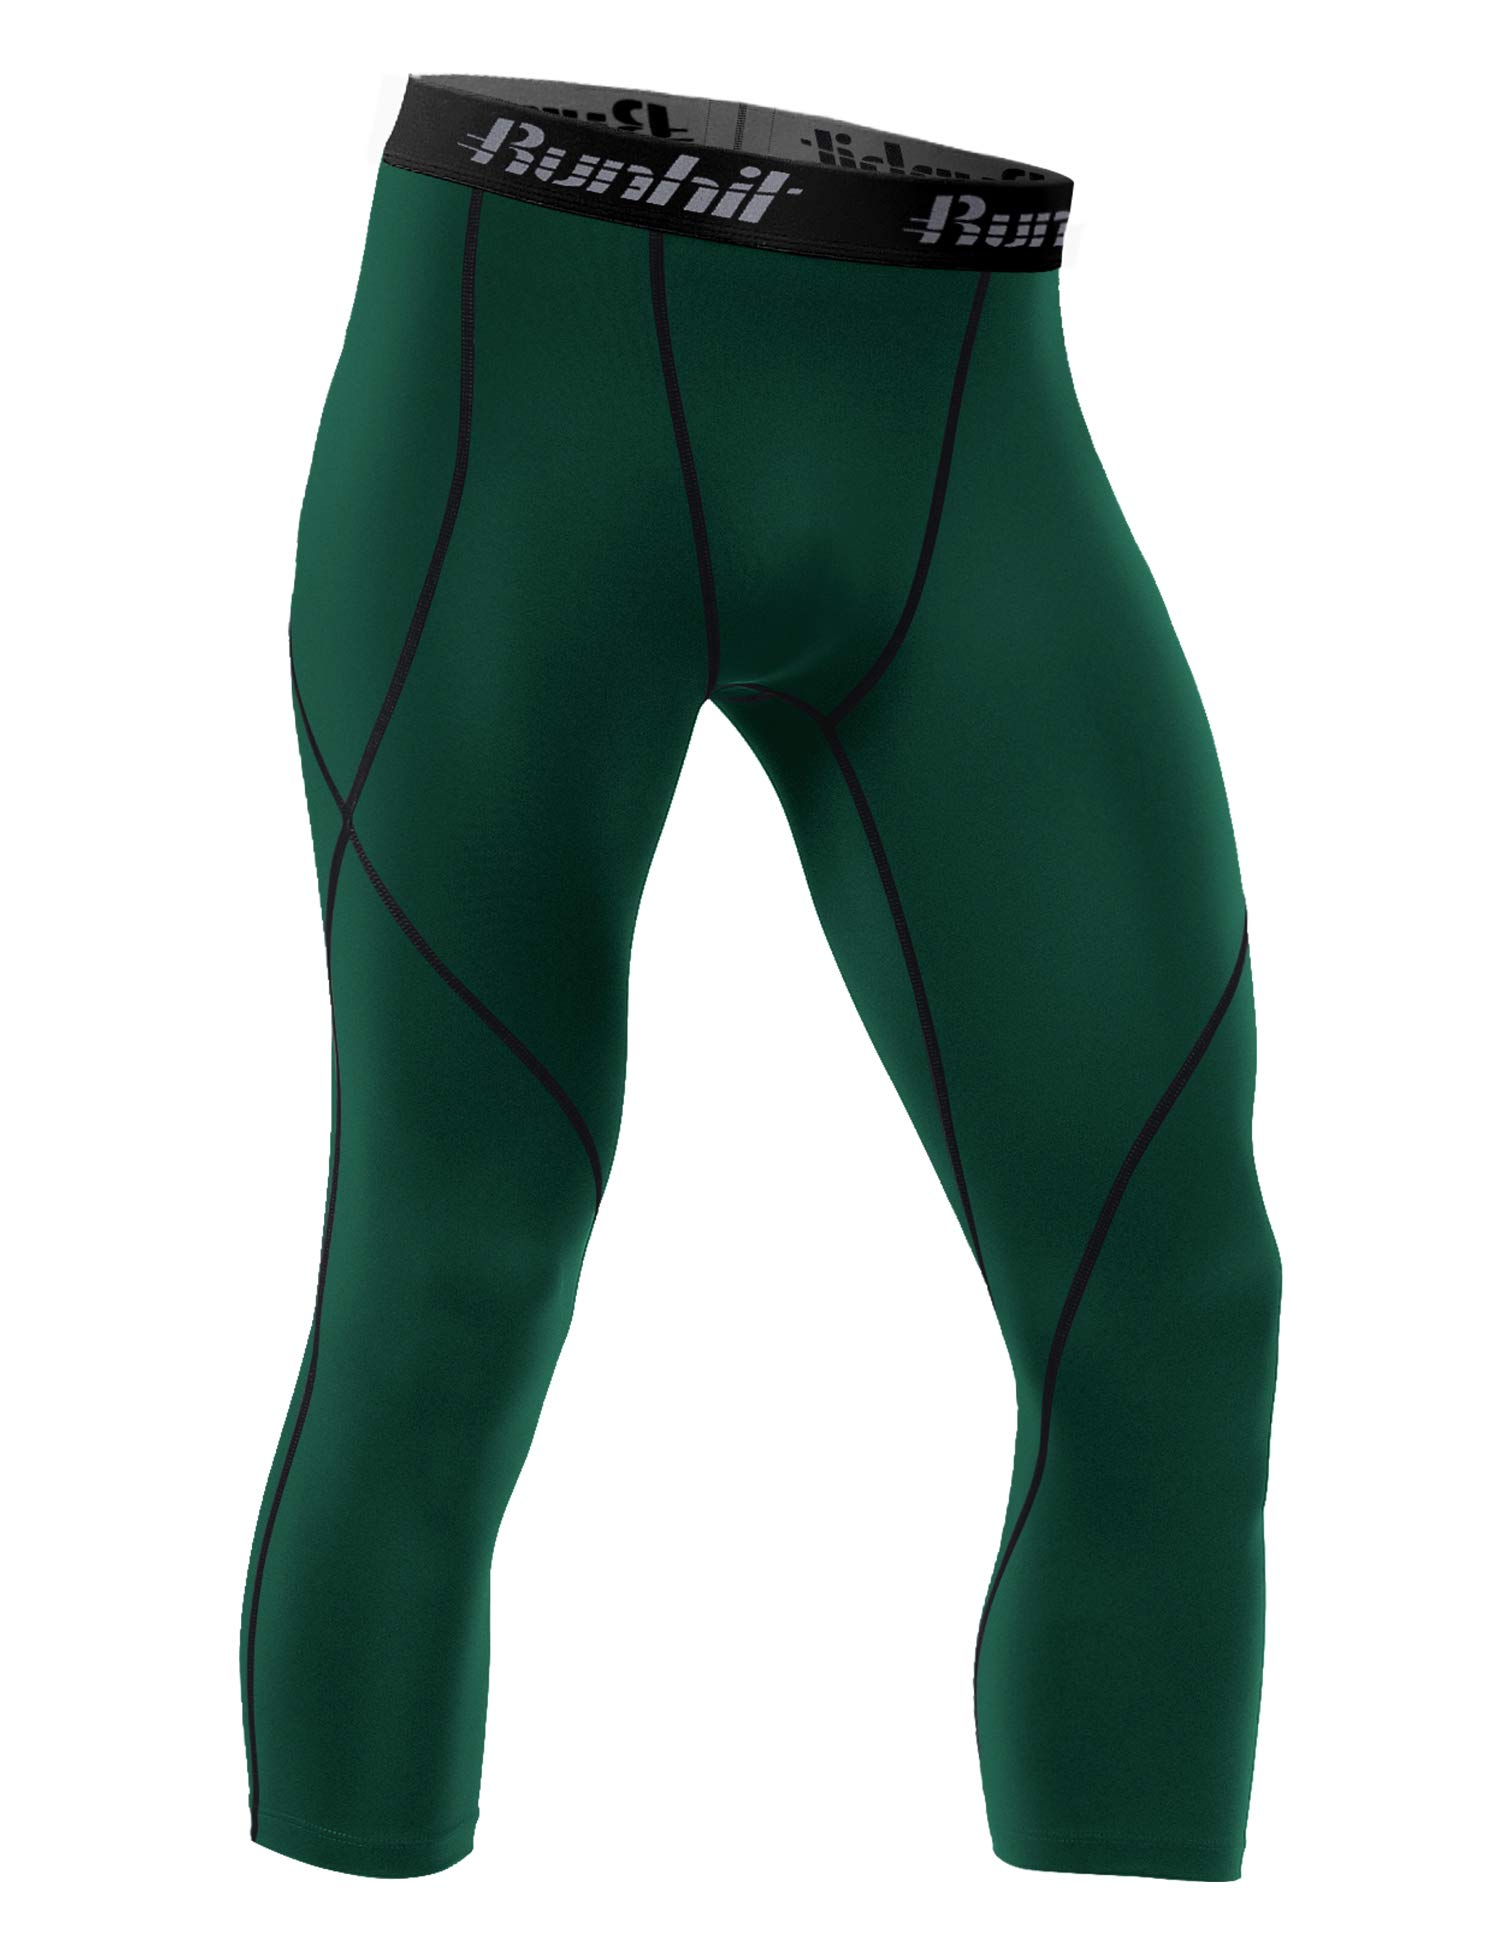 Runhit Mens 3/4 Compression Leggings Pants Capri Shorts Baselayer Cool Dry Sport Tights DarkGreen by Runhit